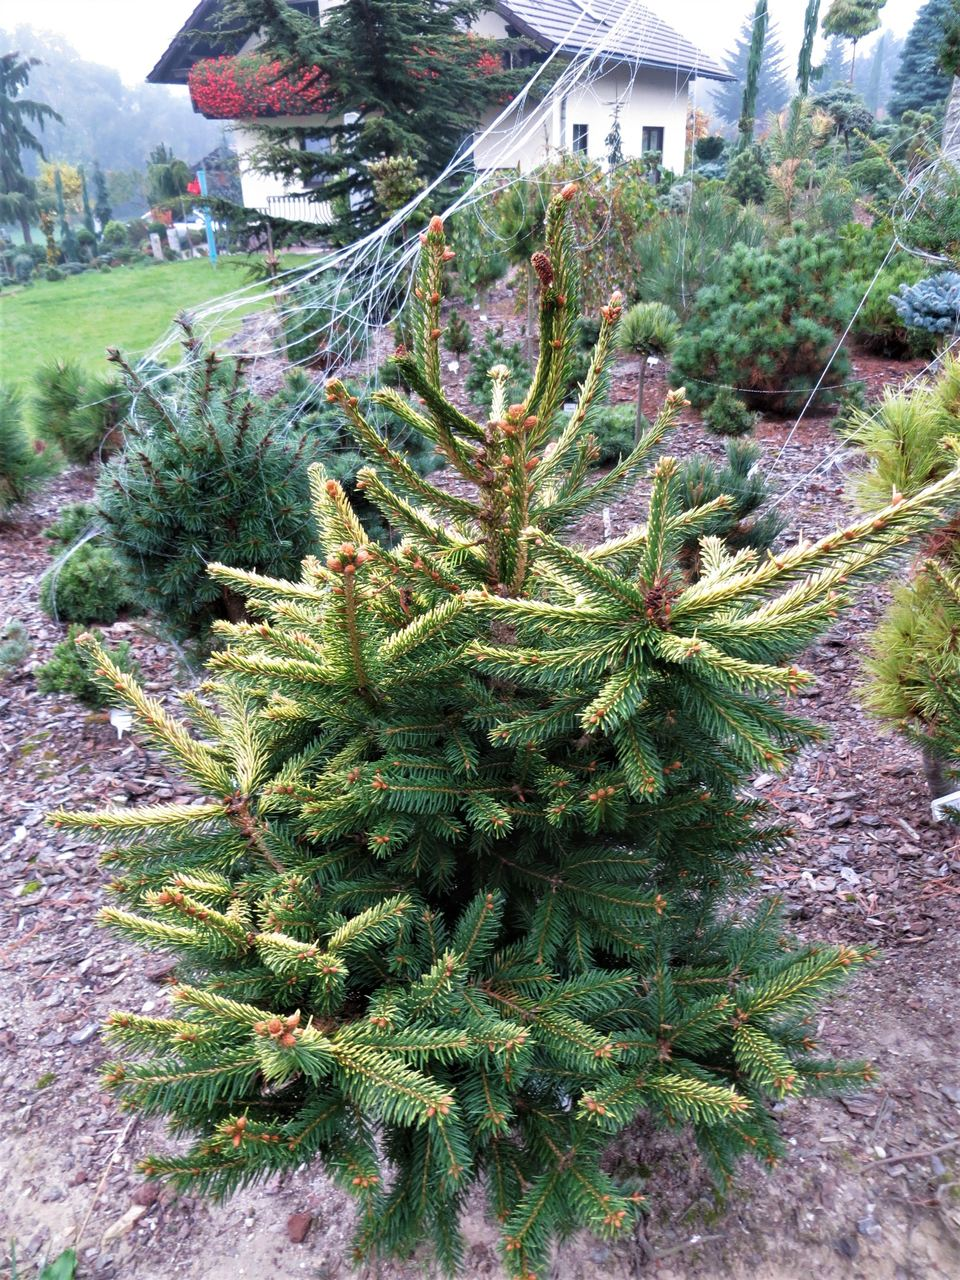 Picea abies Acrocona KBN Yellow Acro Yellow spruce conifer evergreen cones yellow